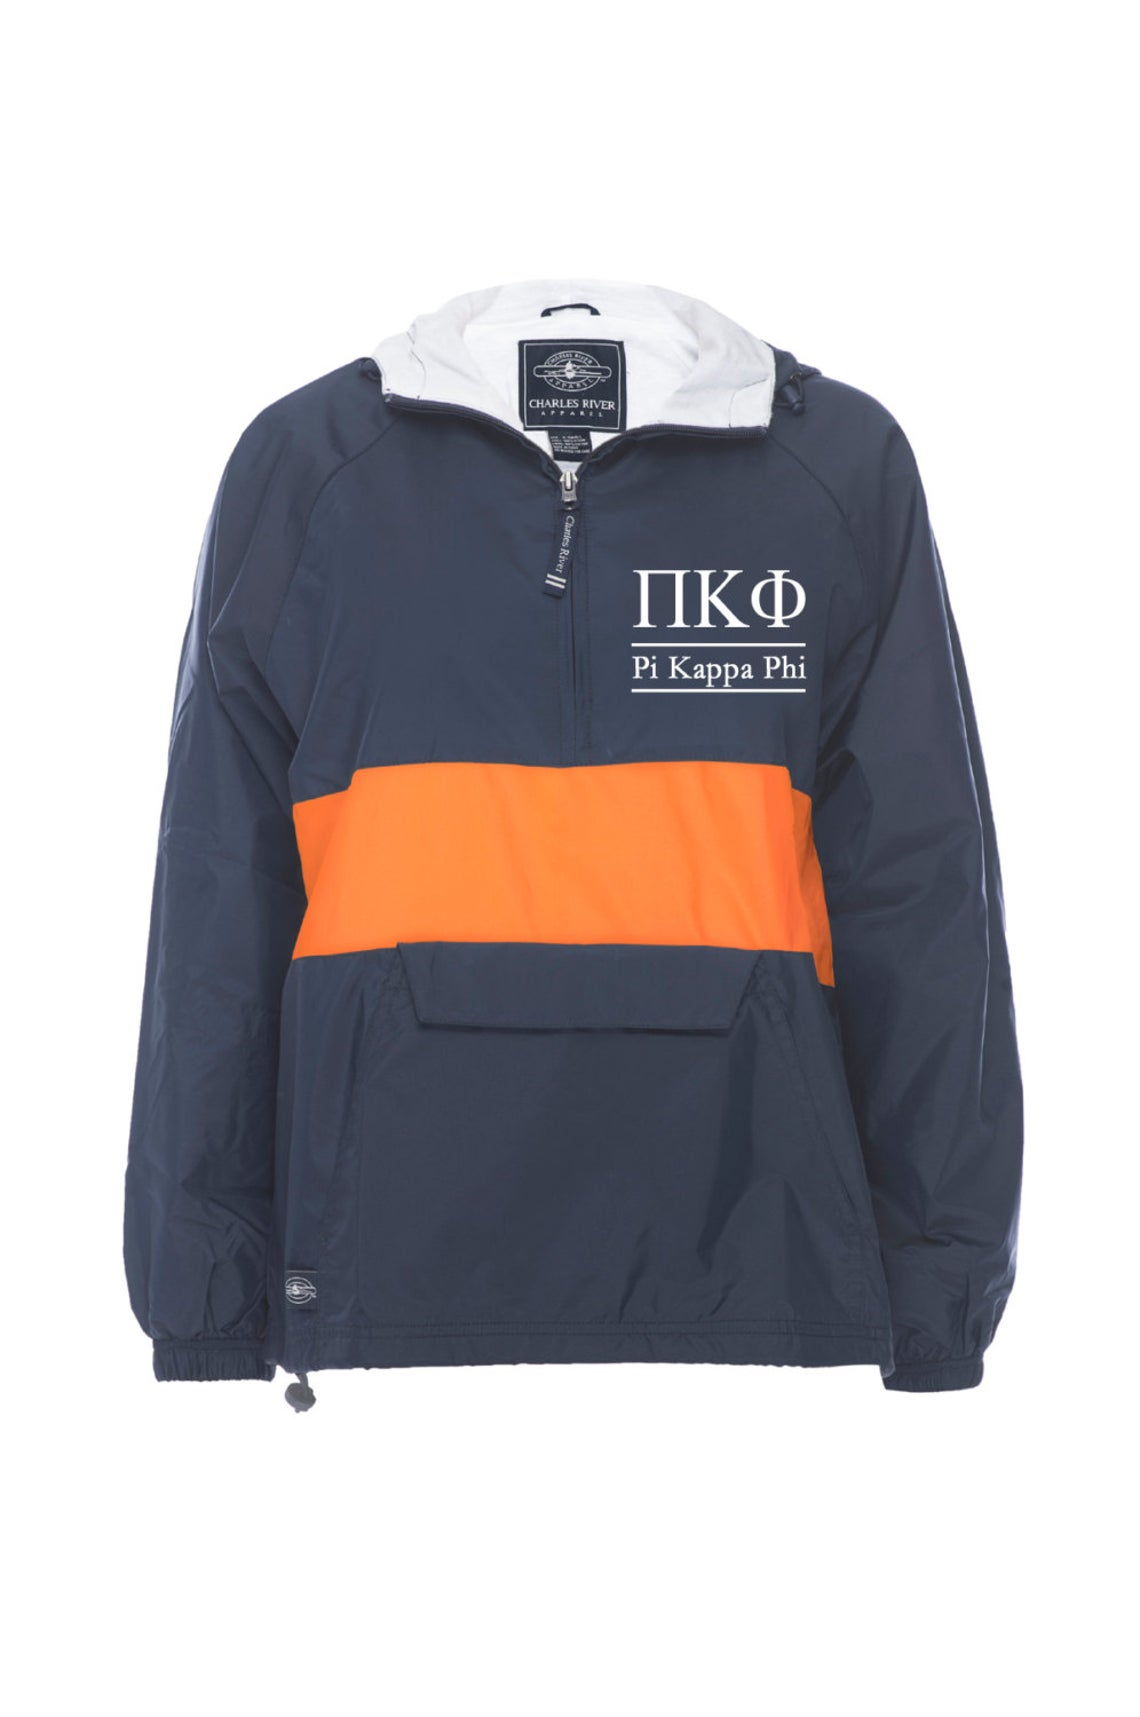 Pi Kappa Phi Rugby Striped Lined Windbreaker